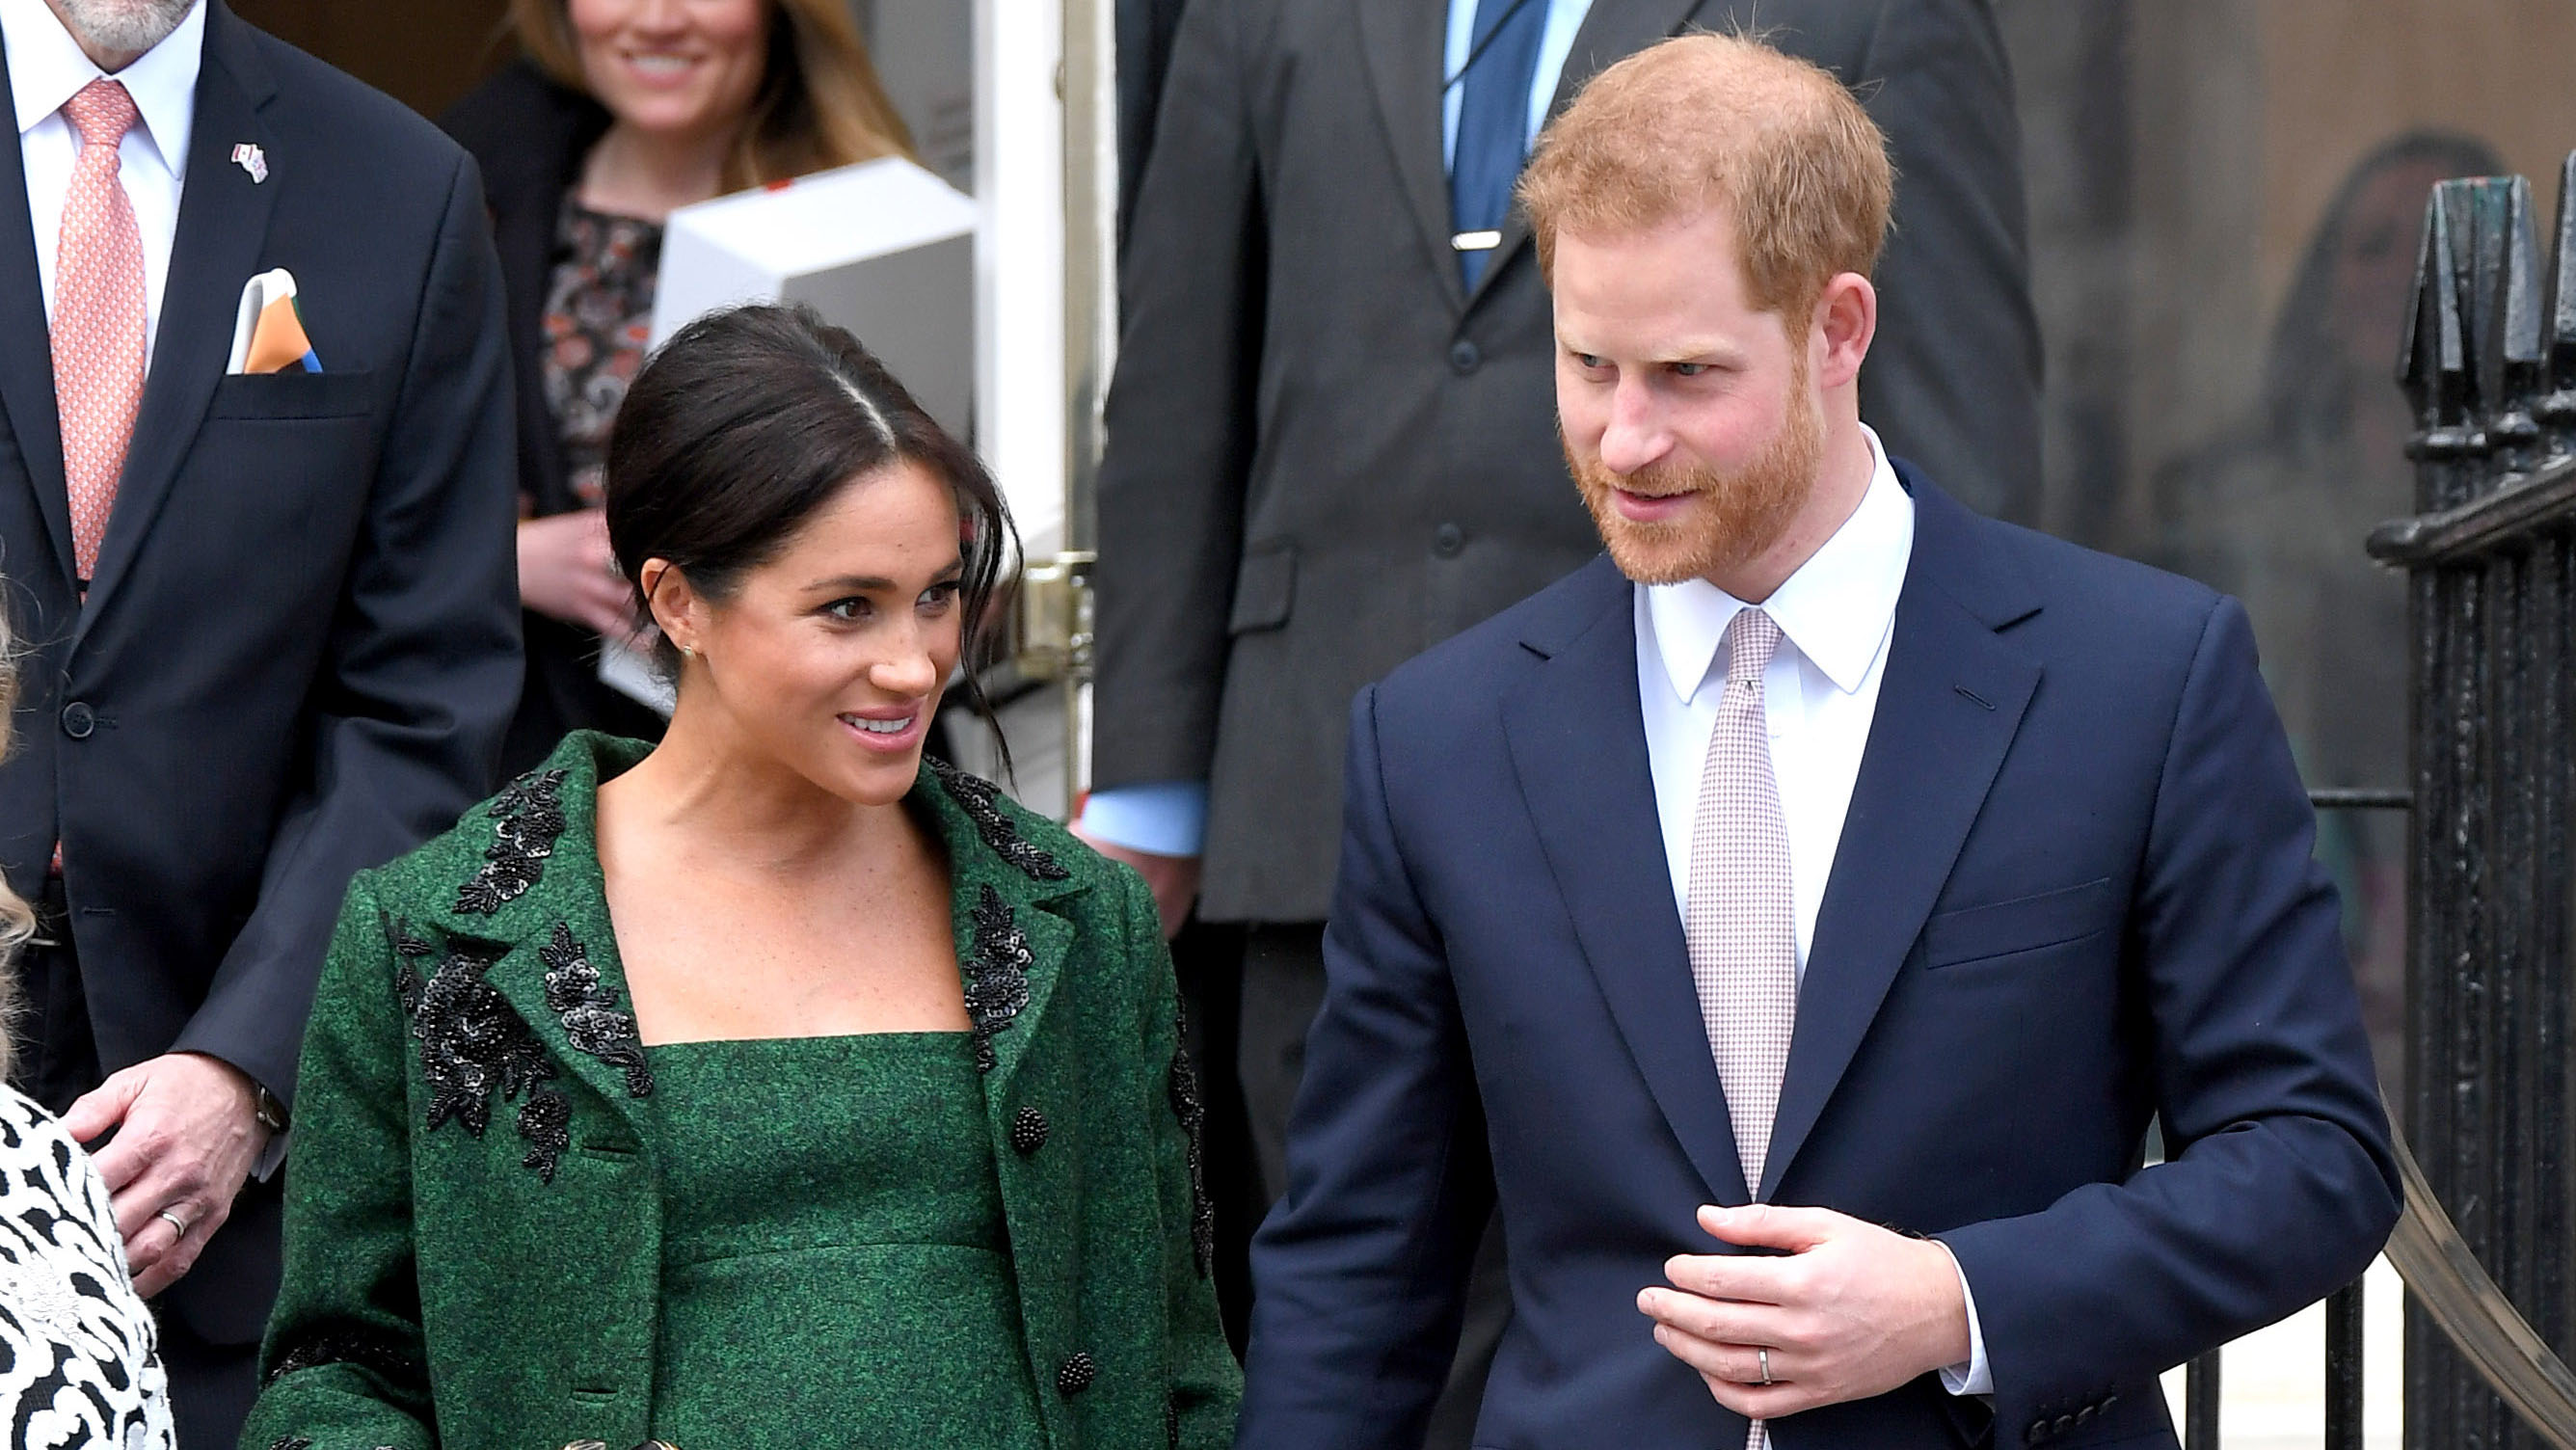 Meghan Markle Is 'Making the Most of Her Maternity Leave' Before Baby No. 1 Arrives (Exclusive)